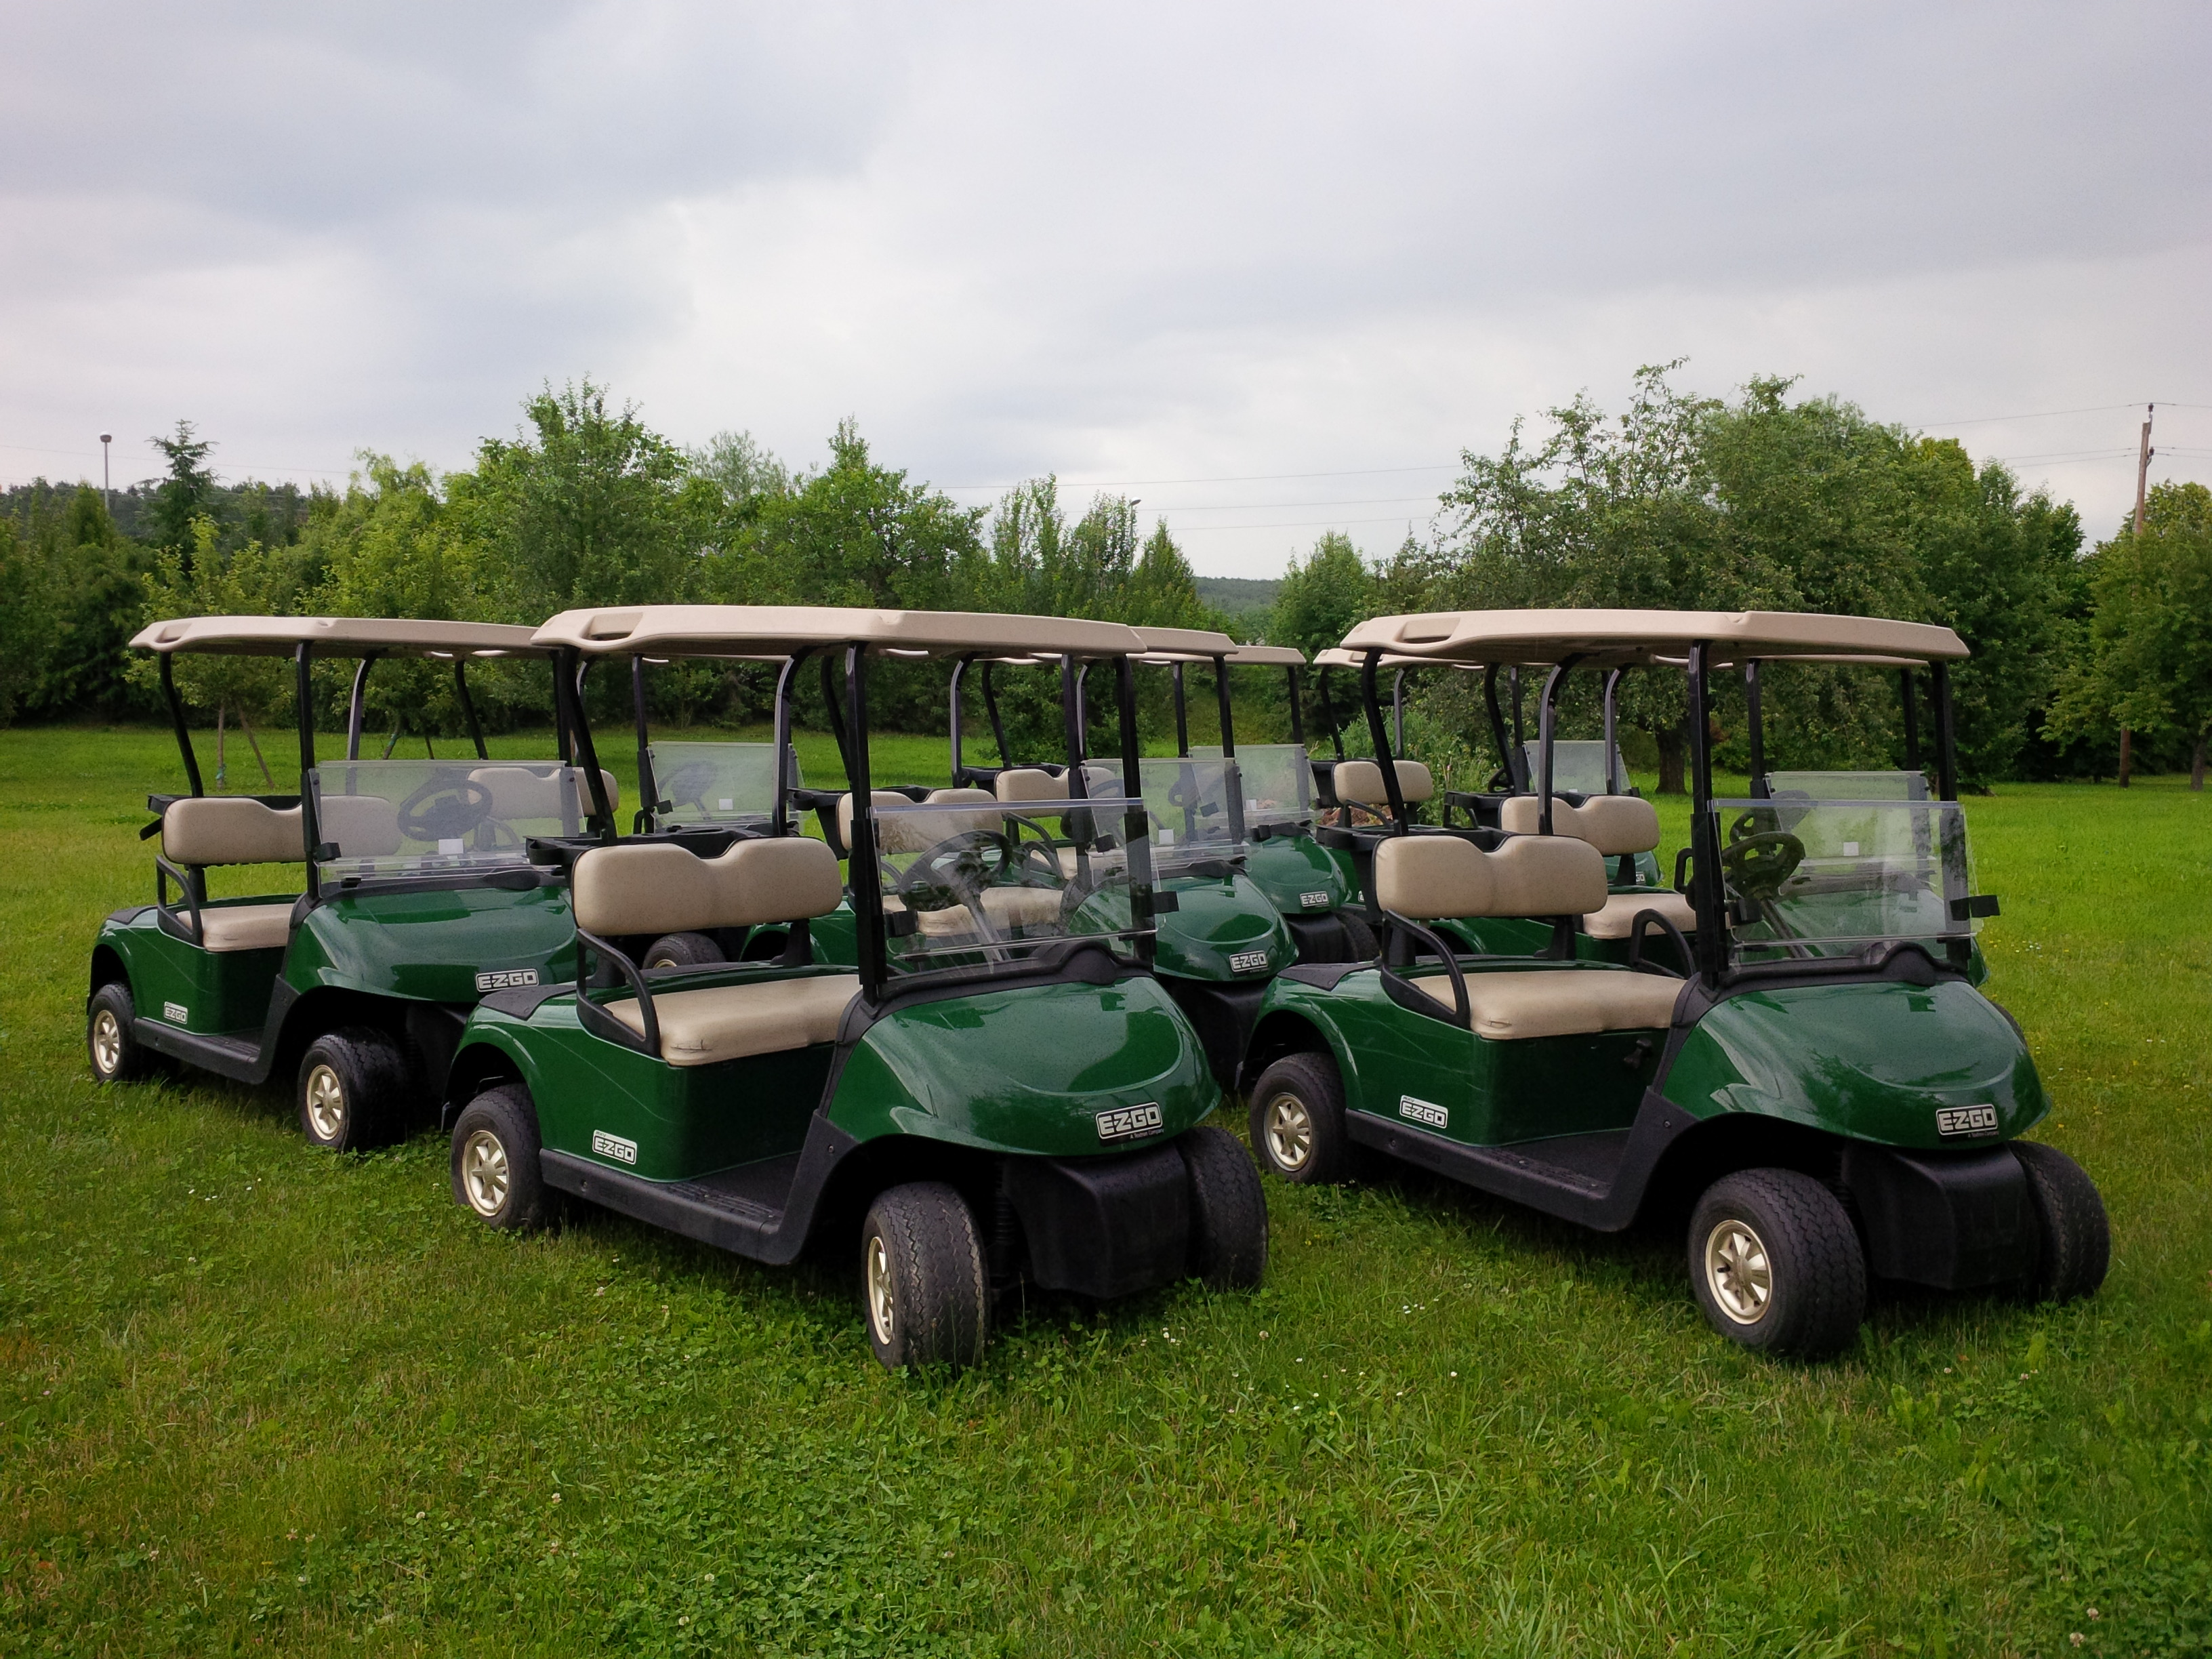 startseite maier 39 s golfcarts maier 39 s golfcarts. Black Bedroom Furniture Sets. Home Design Ideas